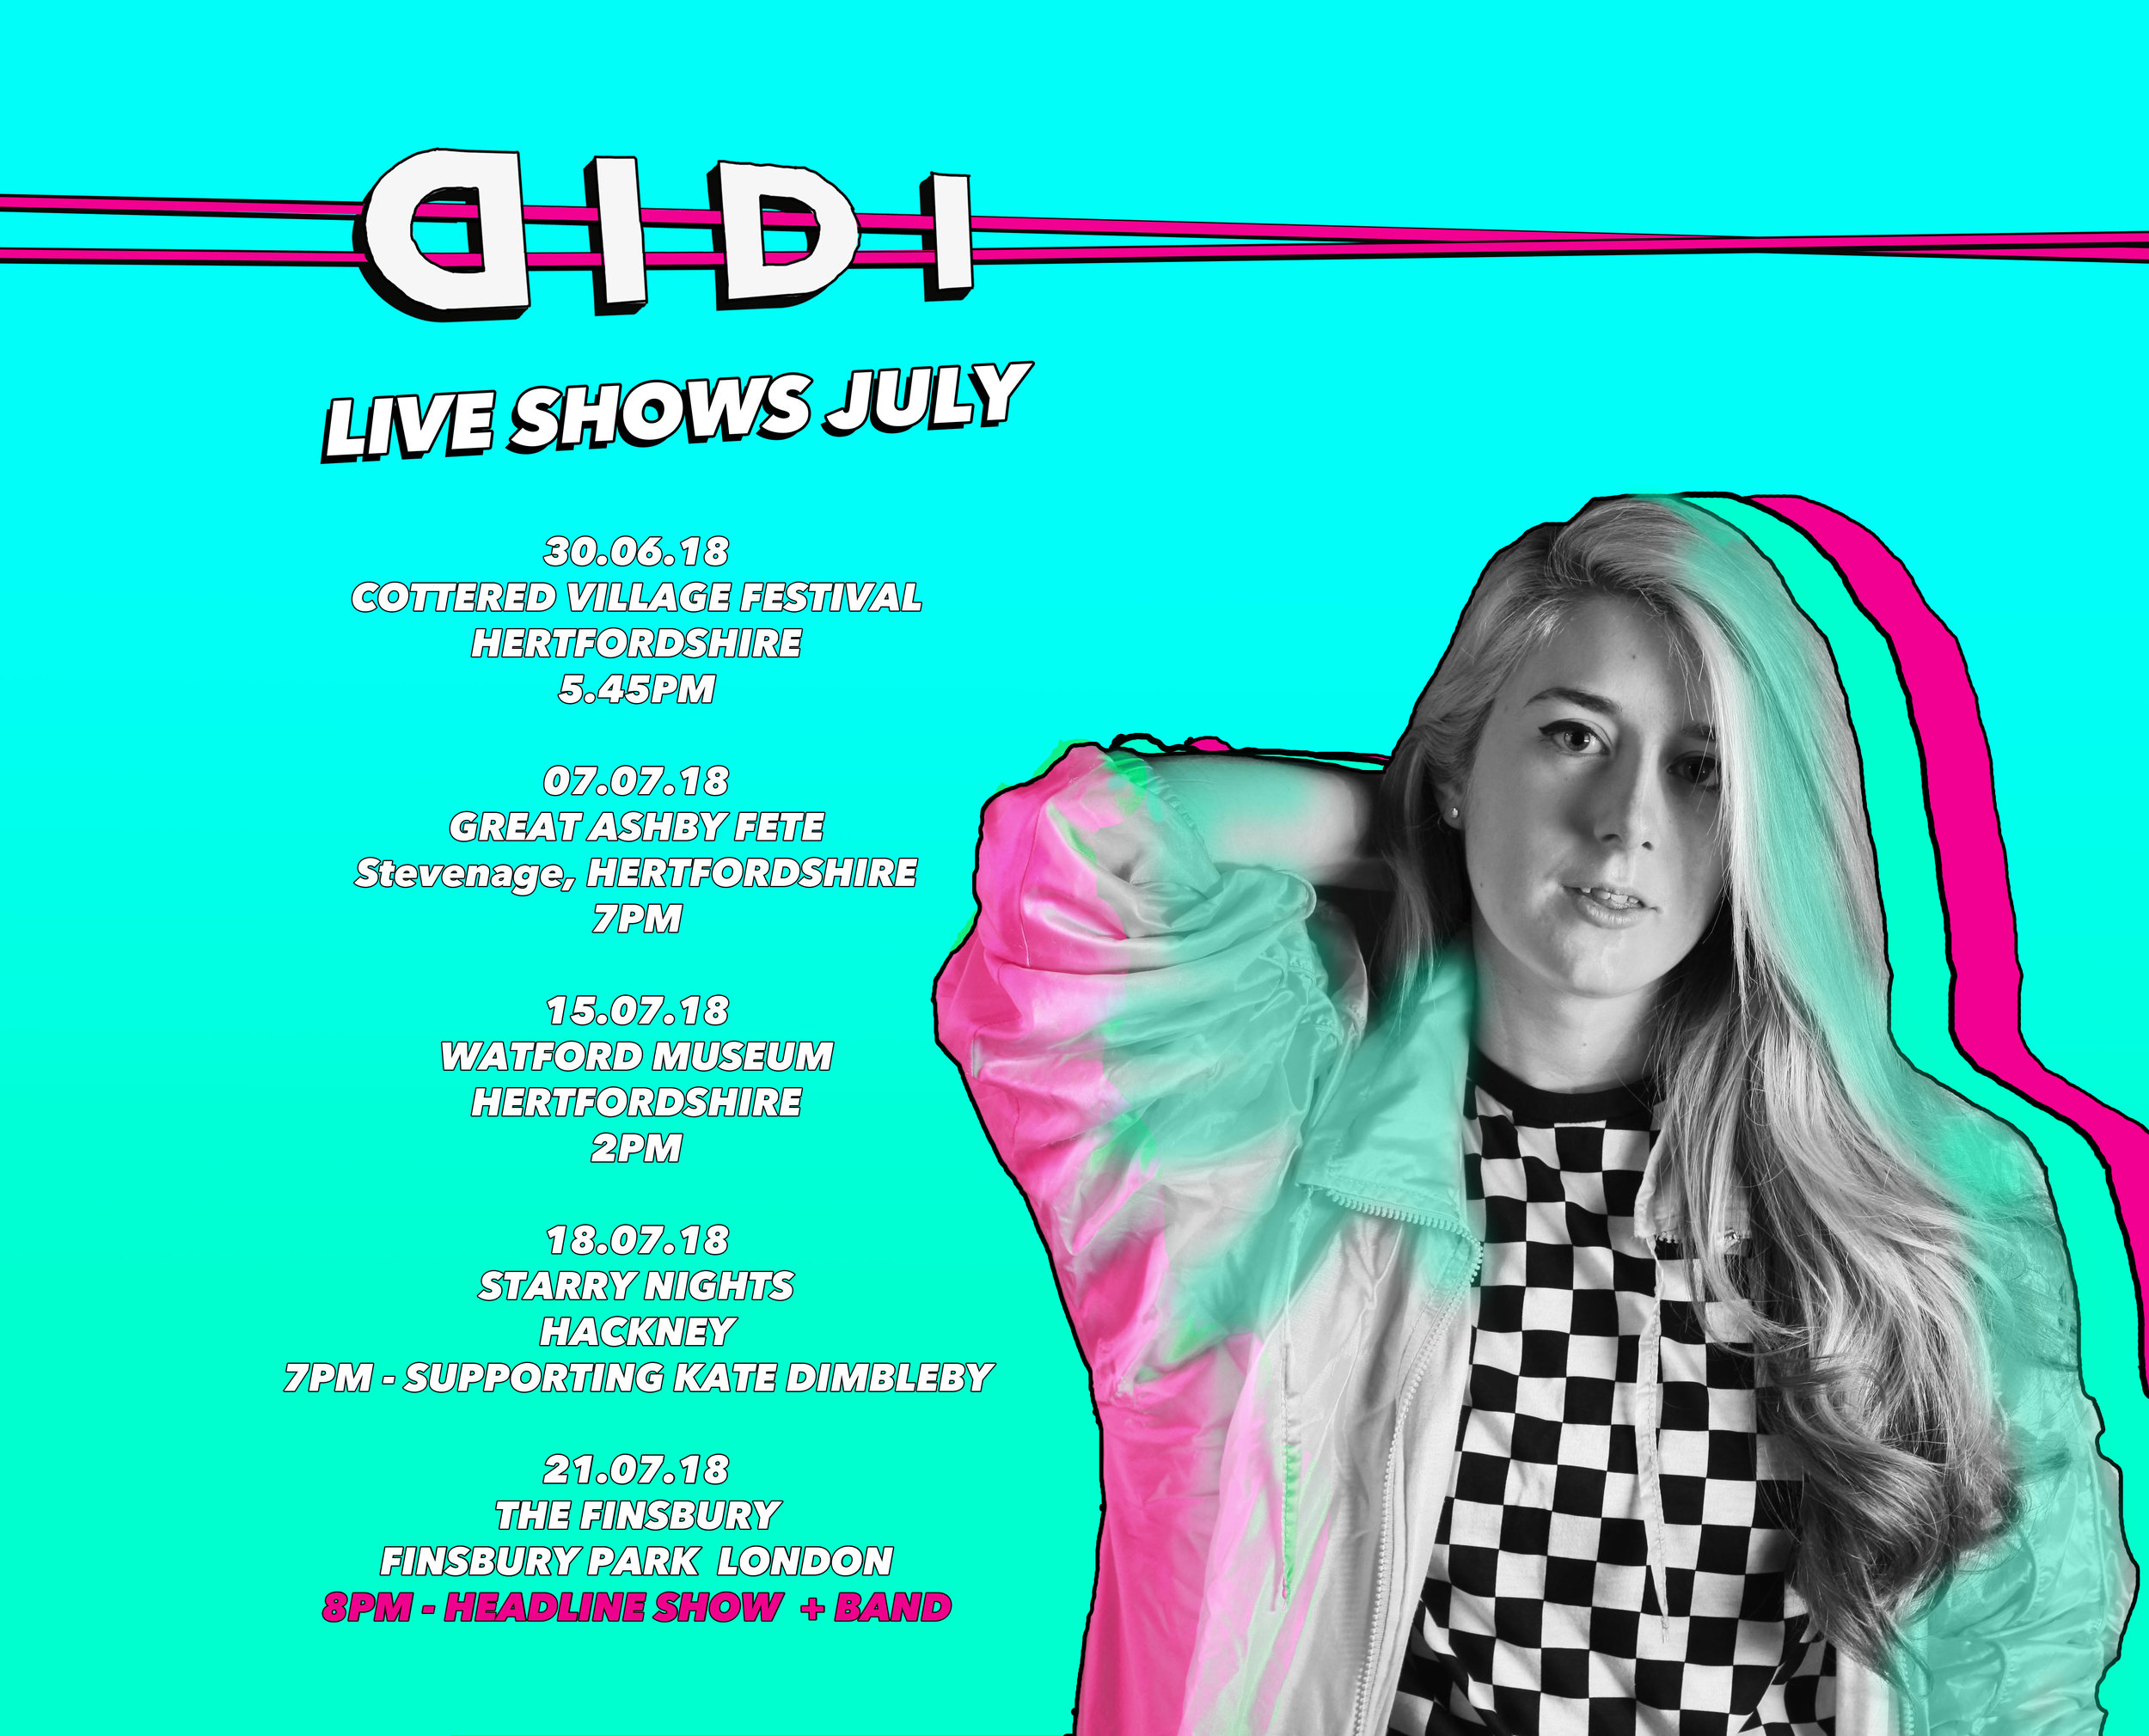 DIDI - July shows - 2 .jpg